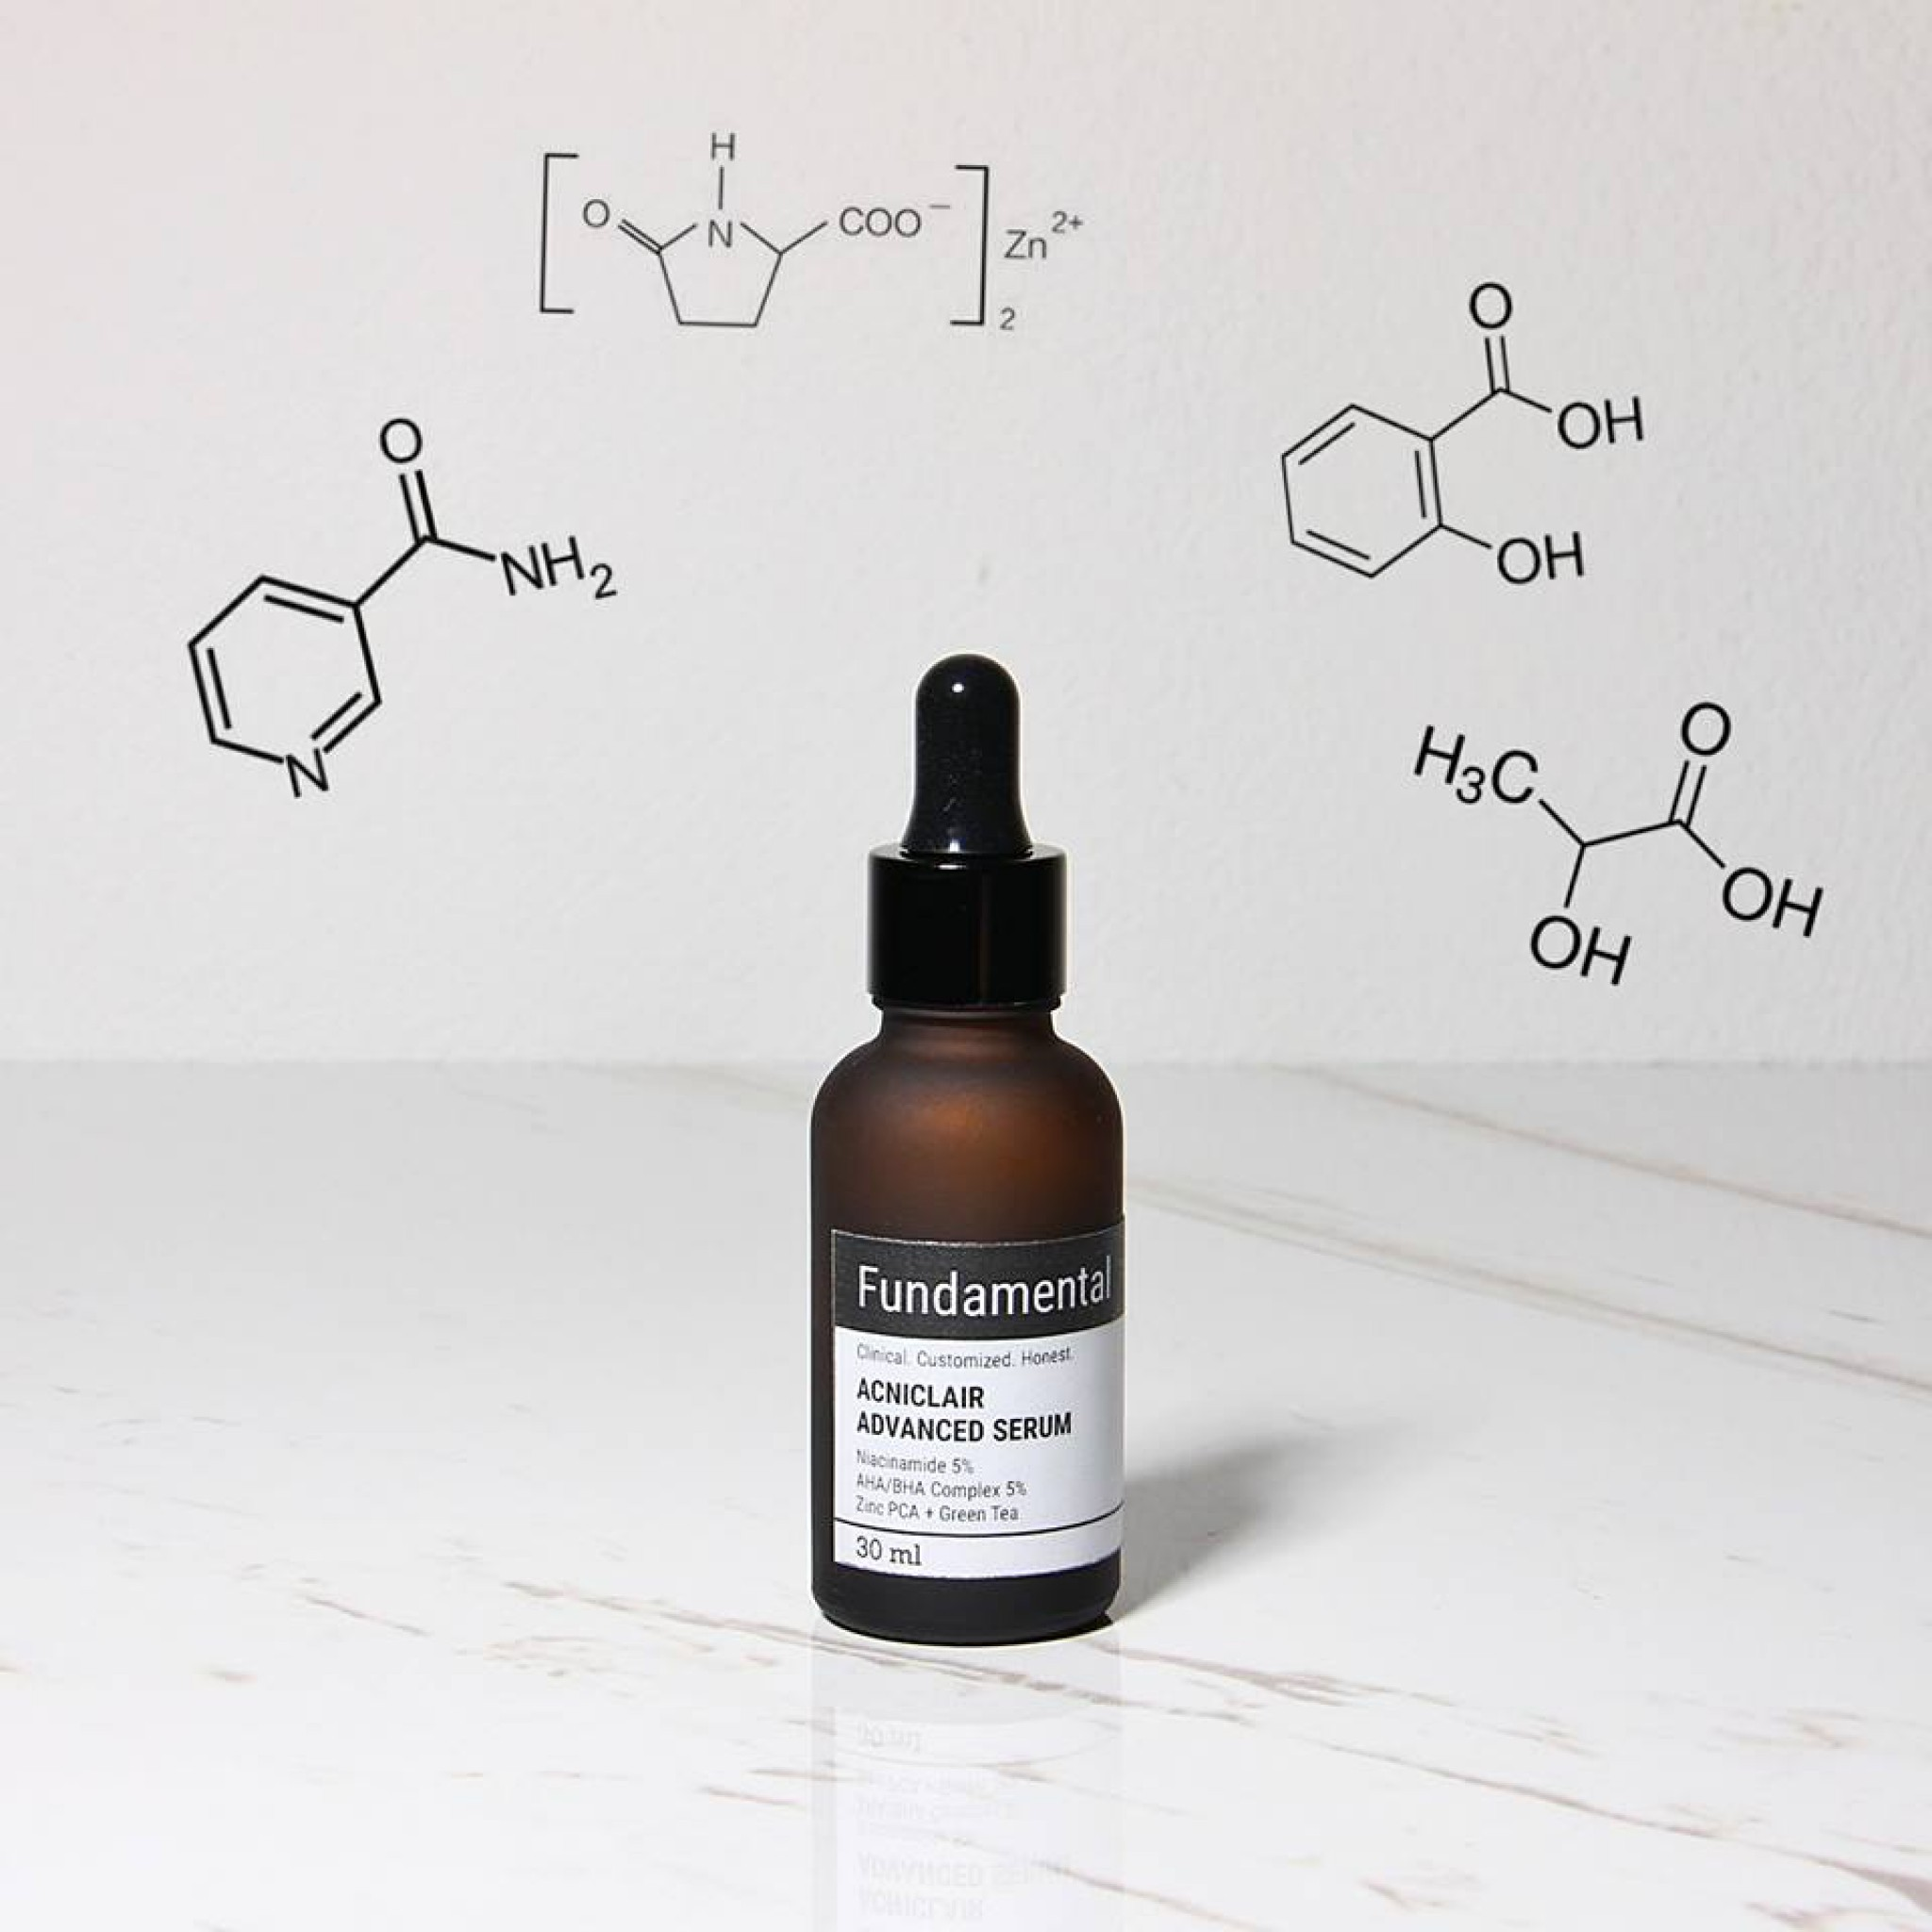 ACNICLAIR ADVANCED SERUM